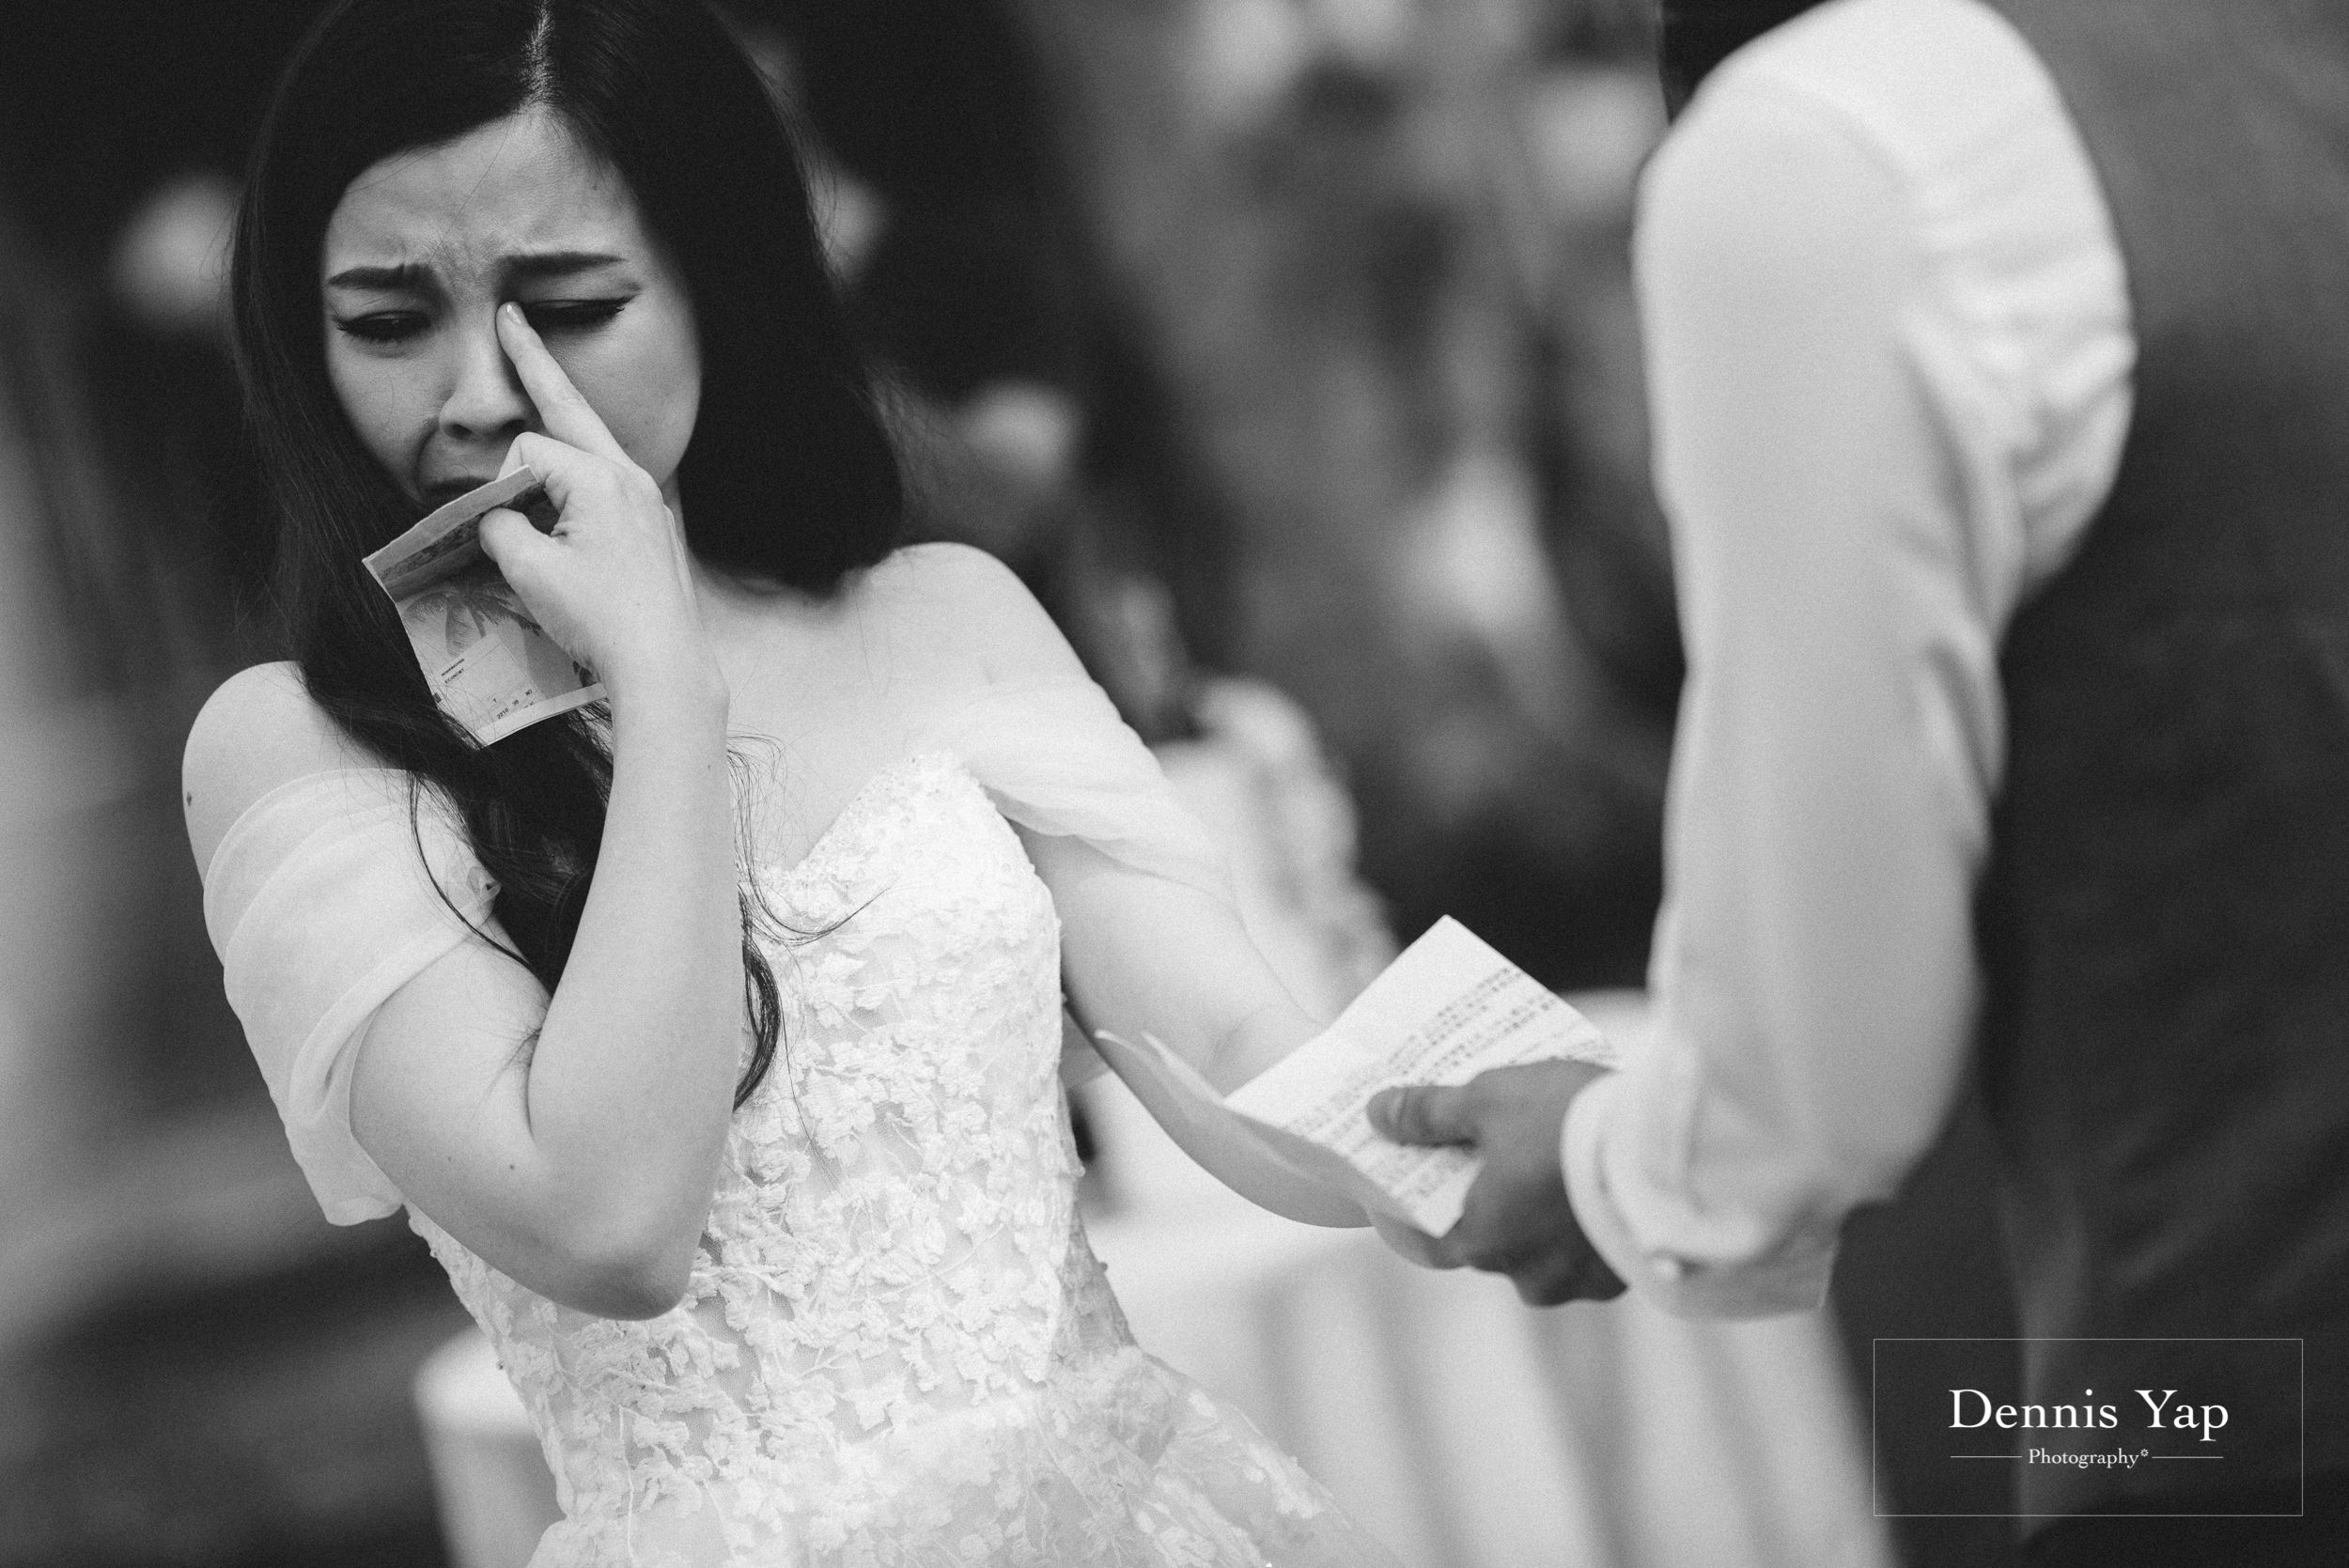 CT Annie garden wedding saujana subang jaya dennis yap photography IT malaysia top photographer-10.jpg